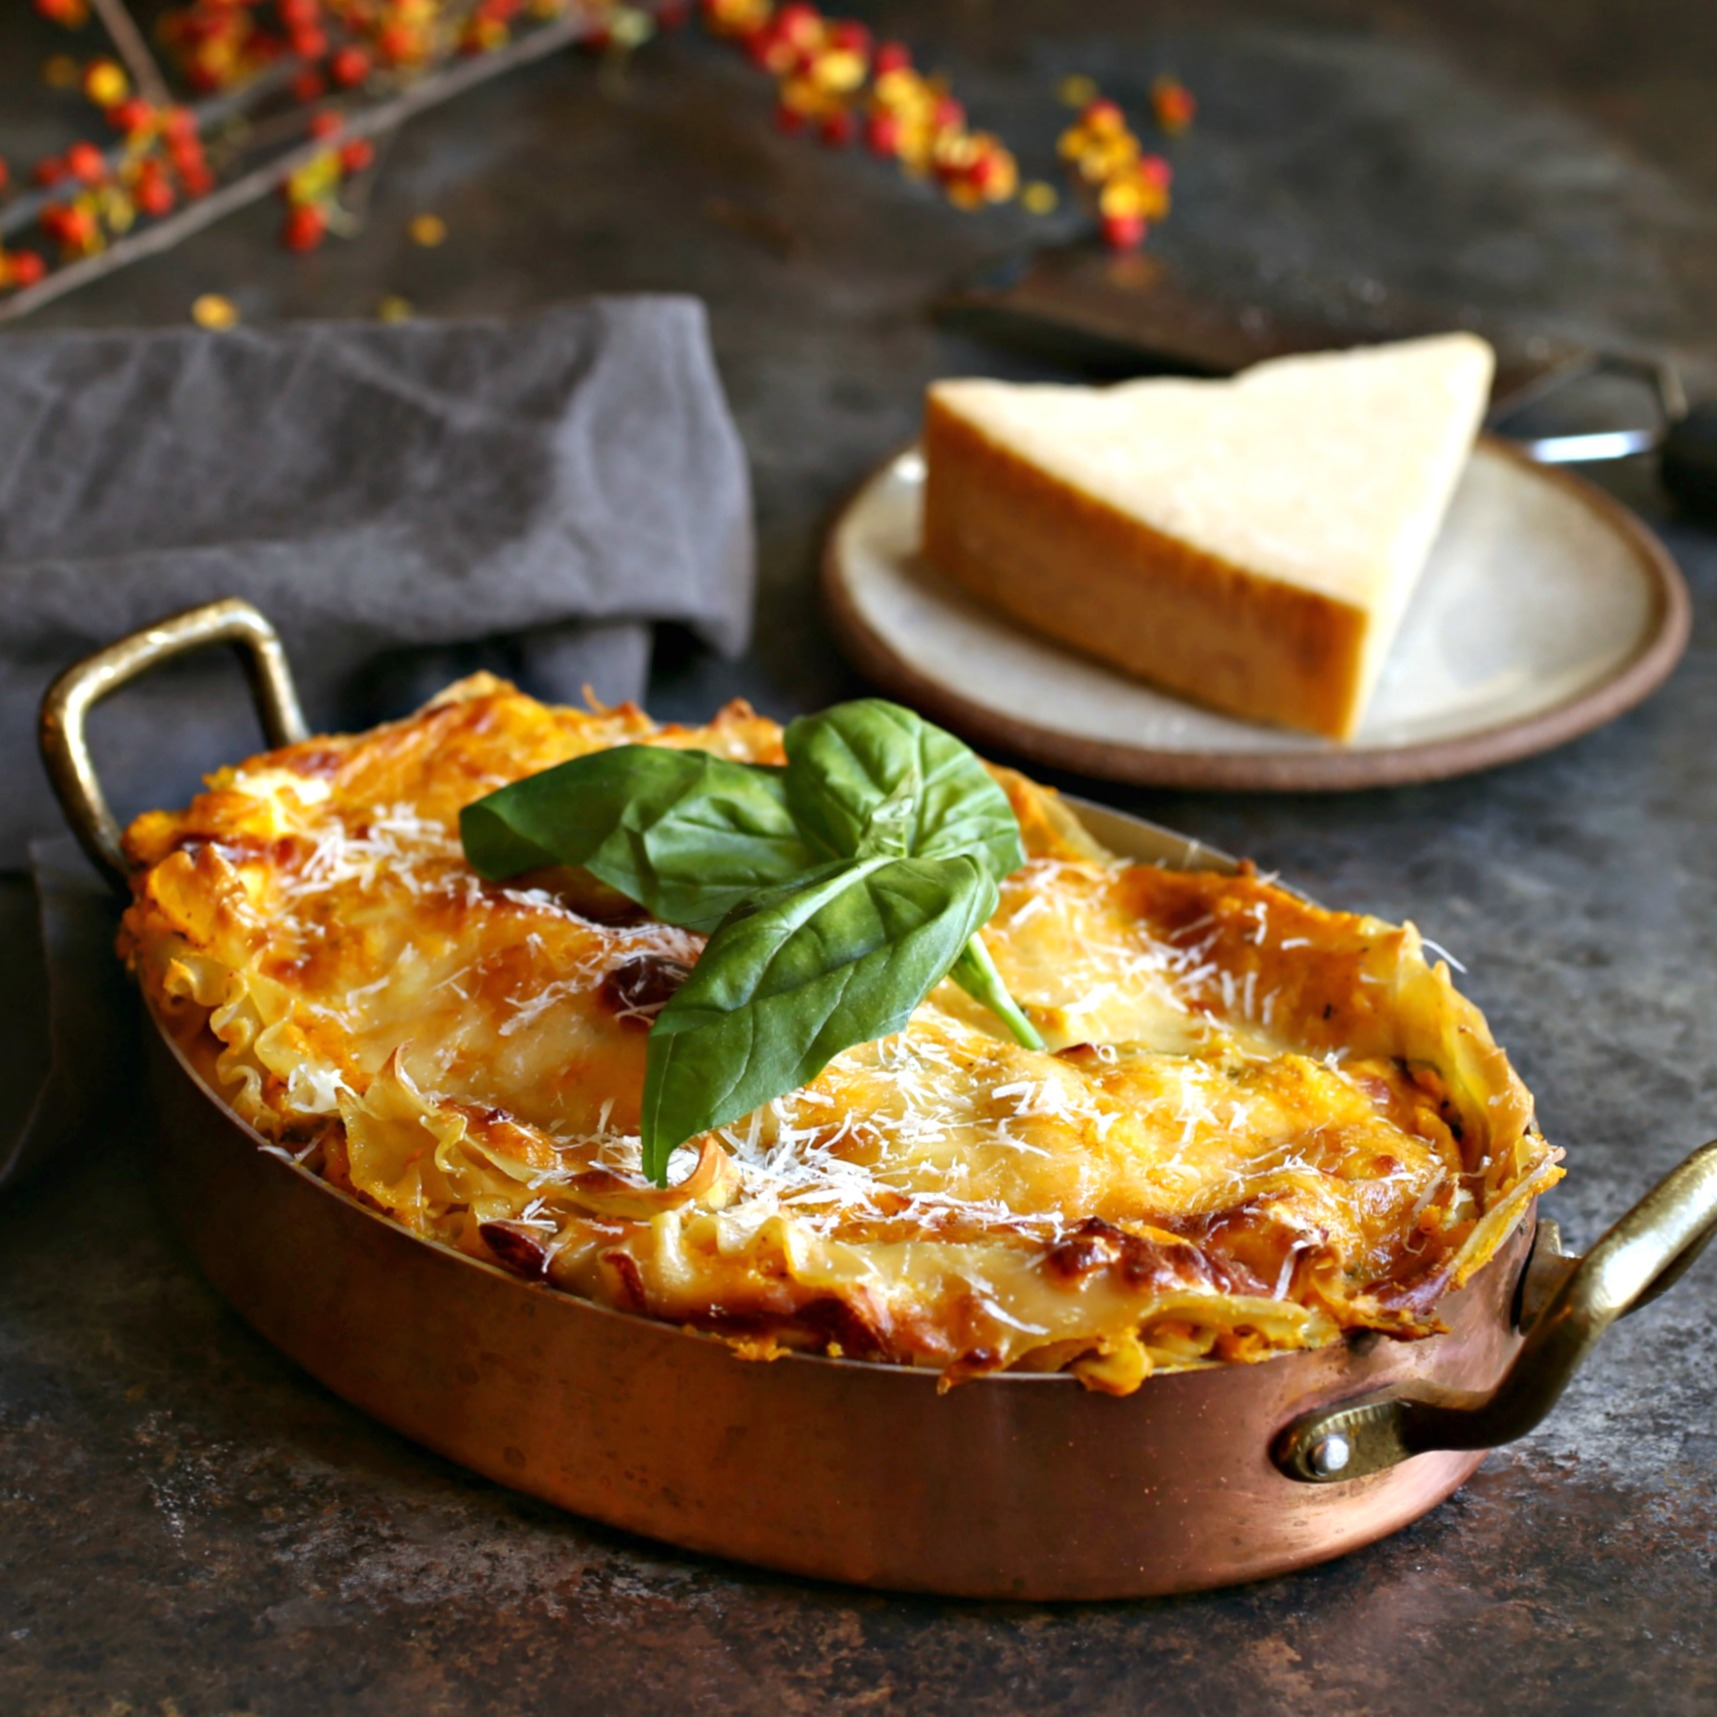 Recipe for lasagna made with a creamy butternut squash and Parmesan bechamel sauce.